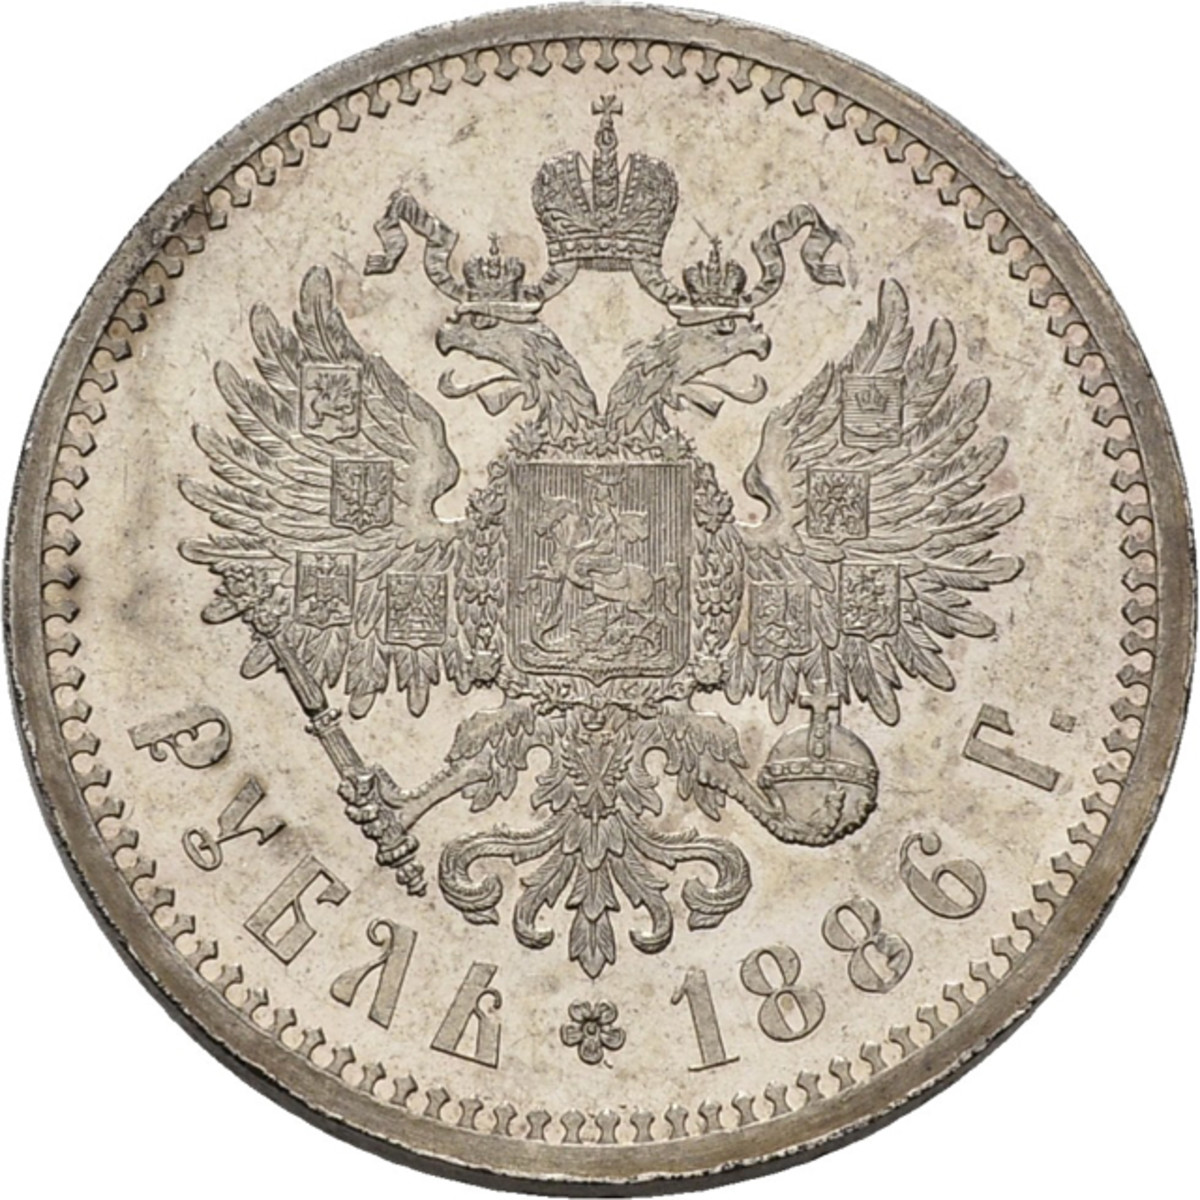 An 1886 pattern rouble of Alexander III by L. Shteinmann is among the coins featured in the upcoming auction